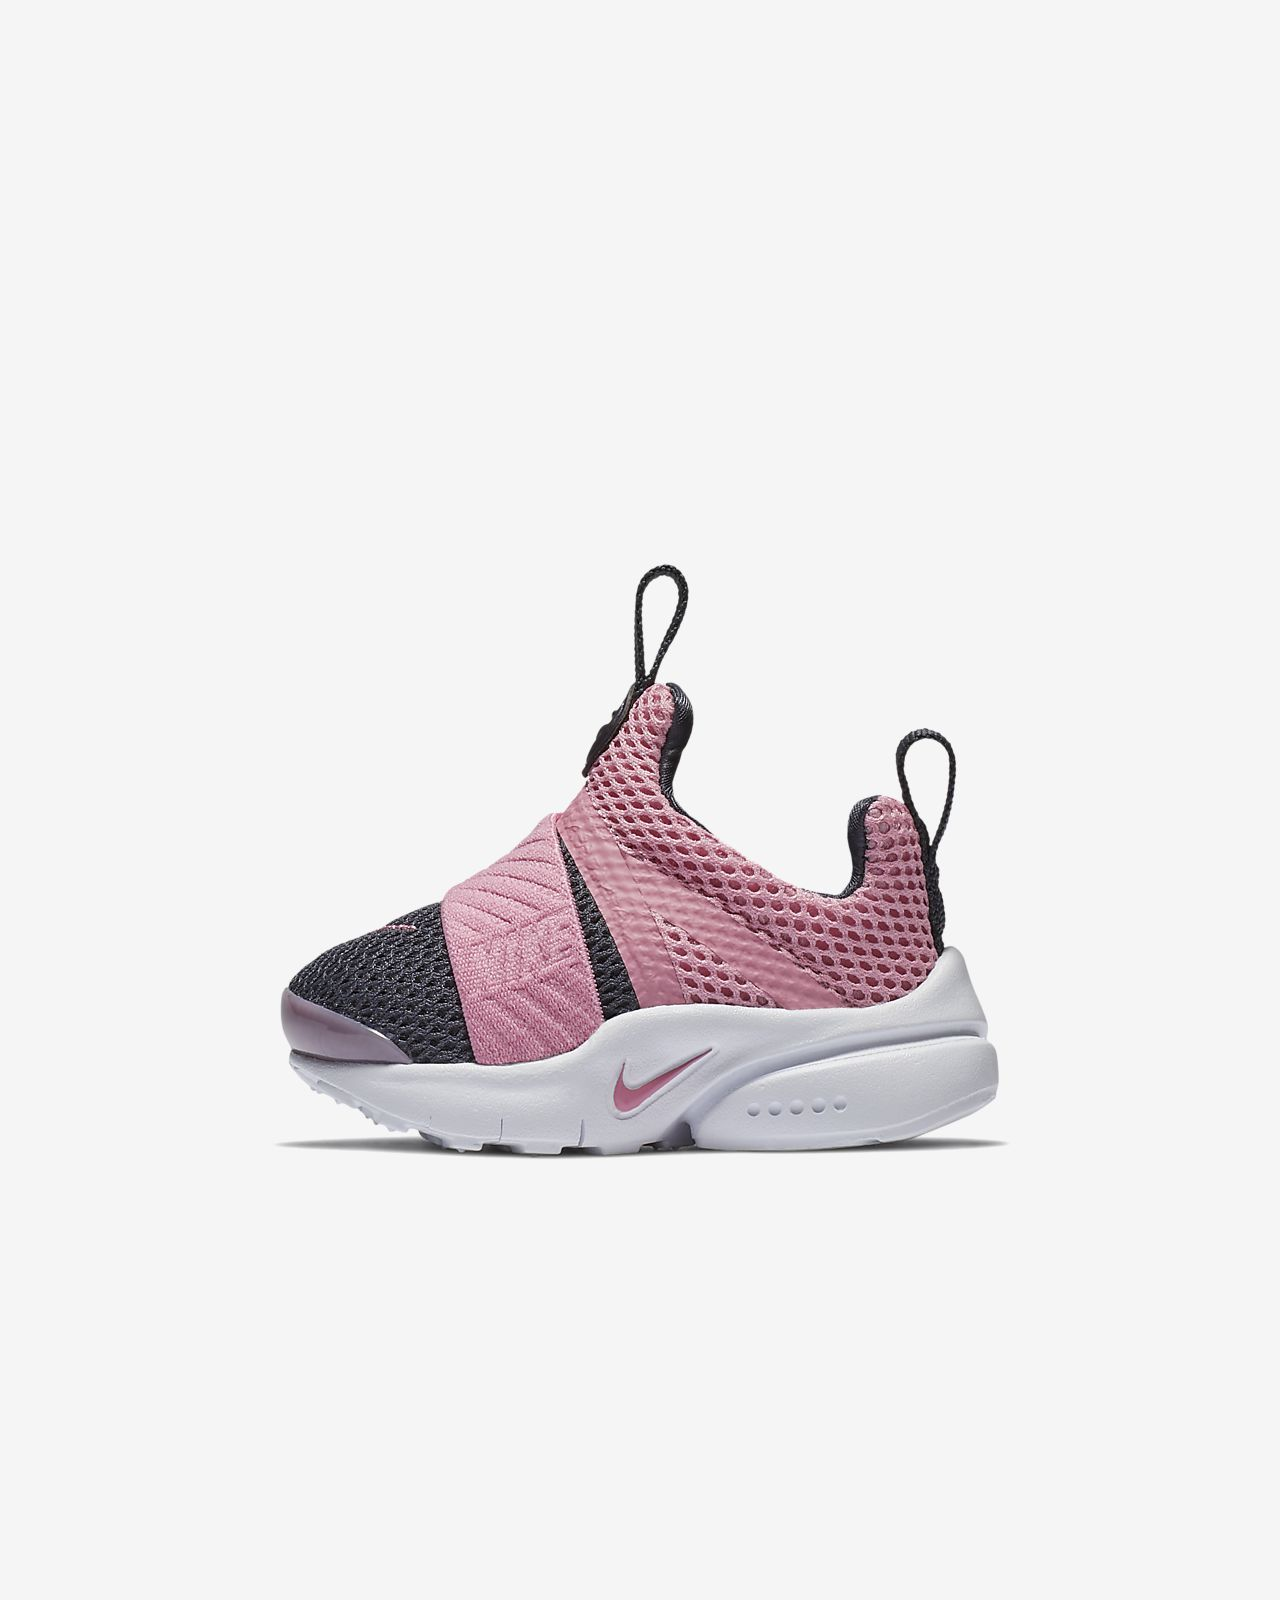 7a5d63c5e0 Nike Infant/Toddler Shoe Presto Extreme | L&C Reveal New 2 | Toddler ...